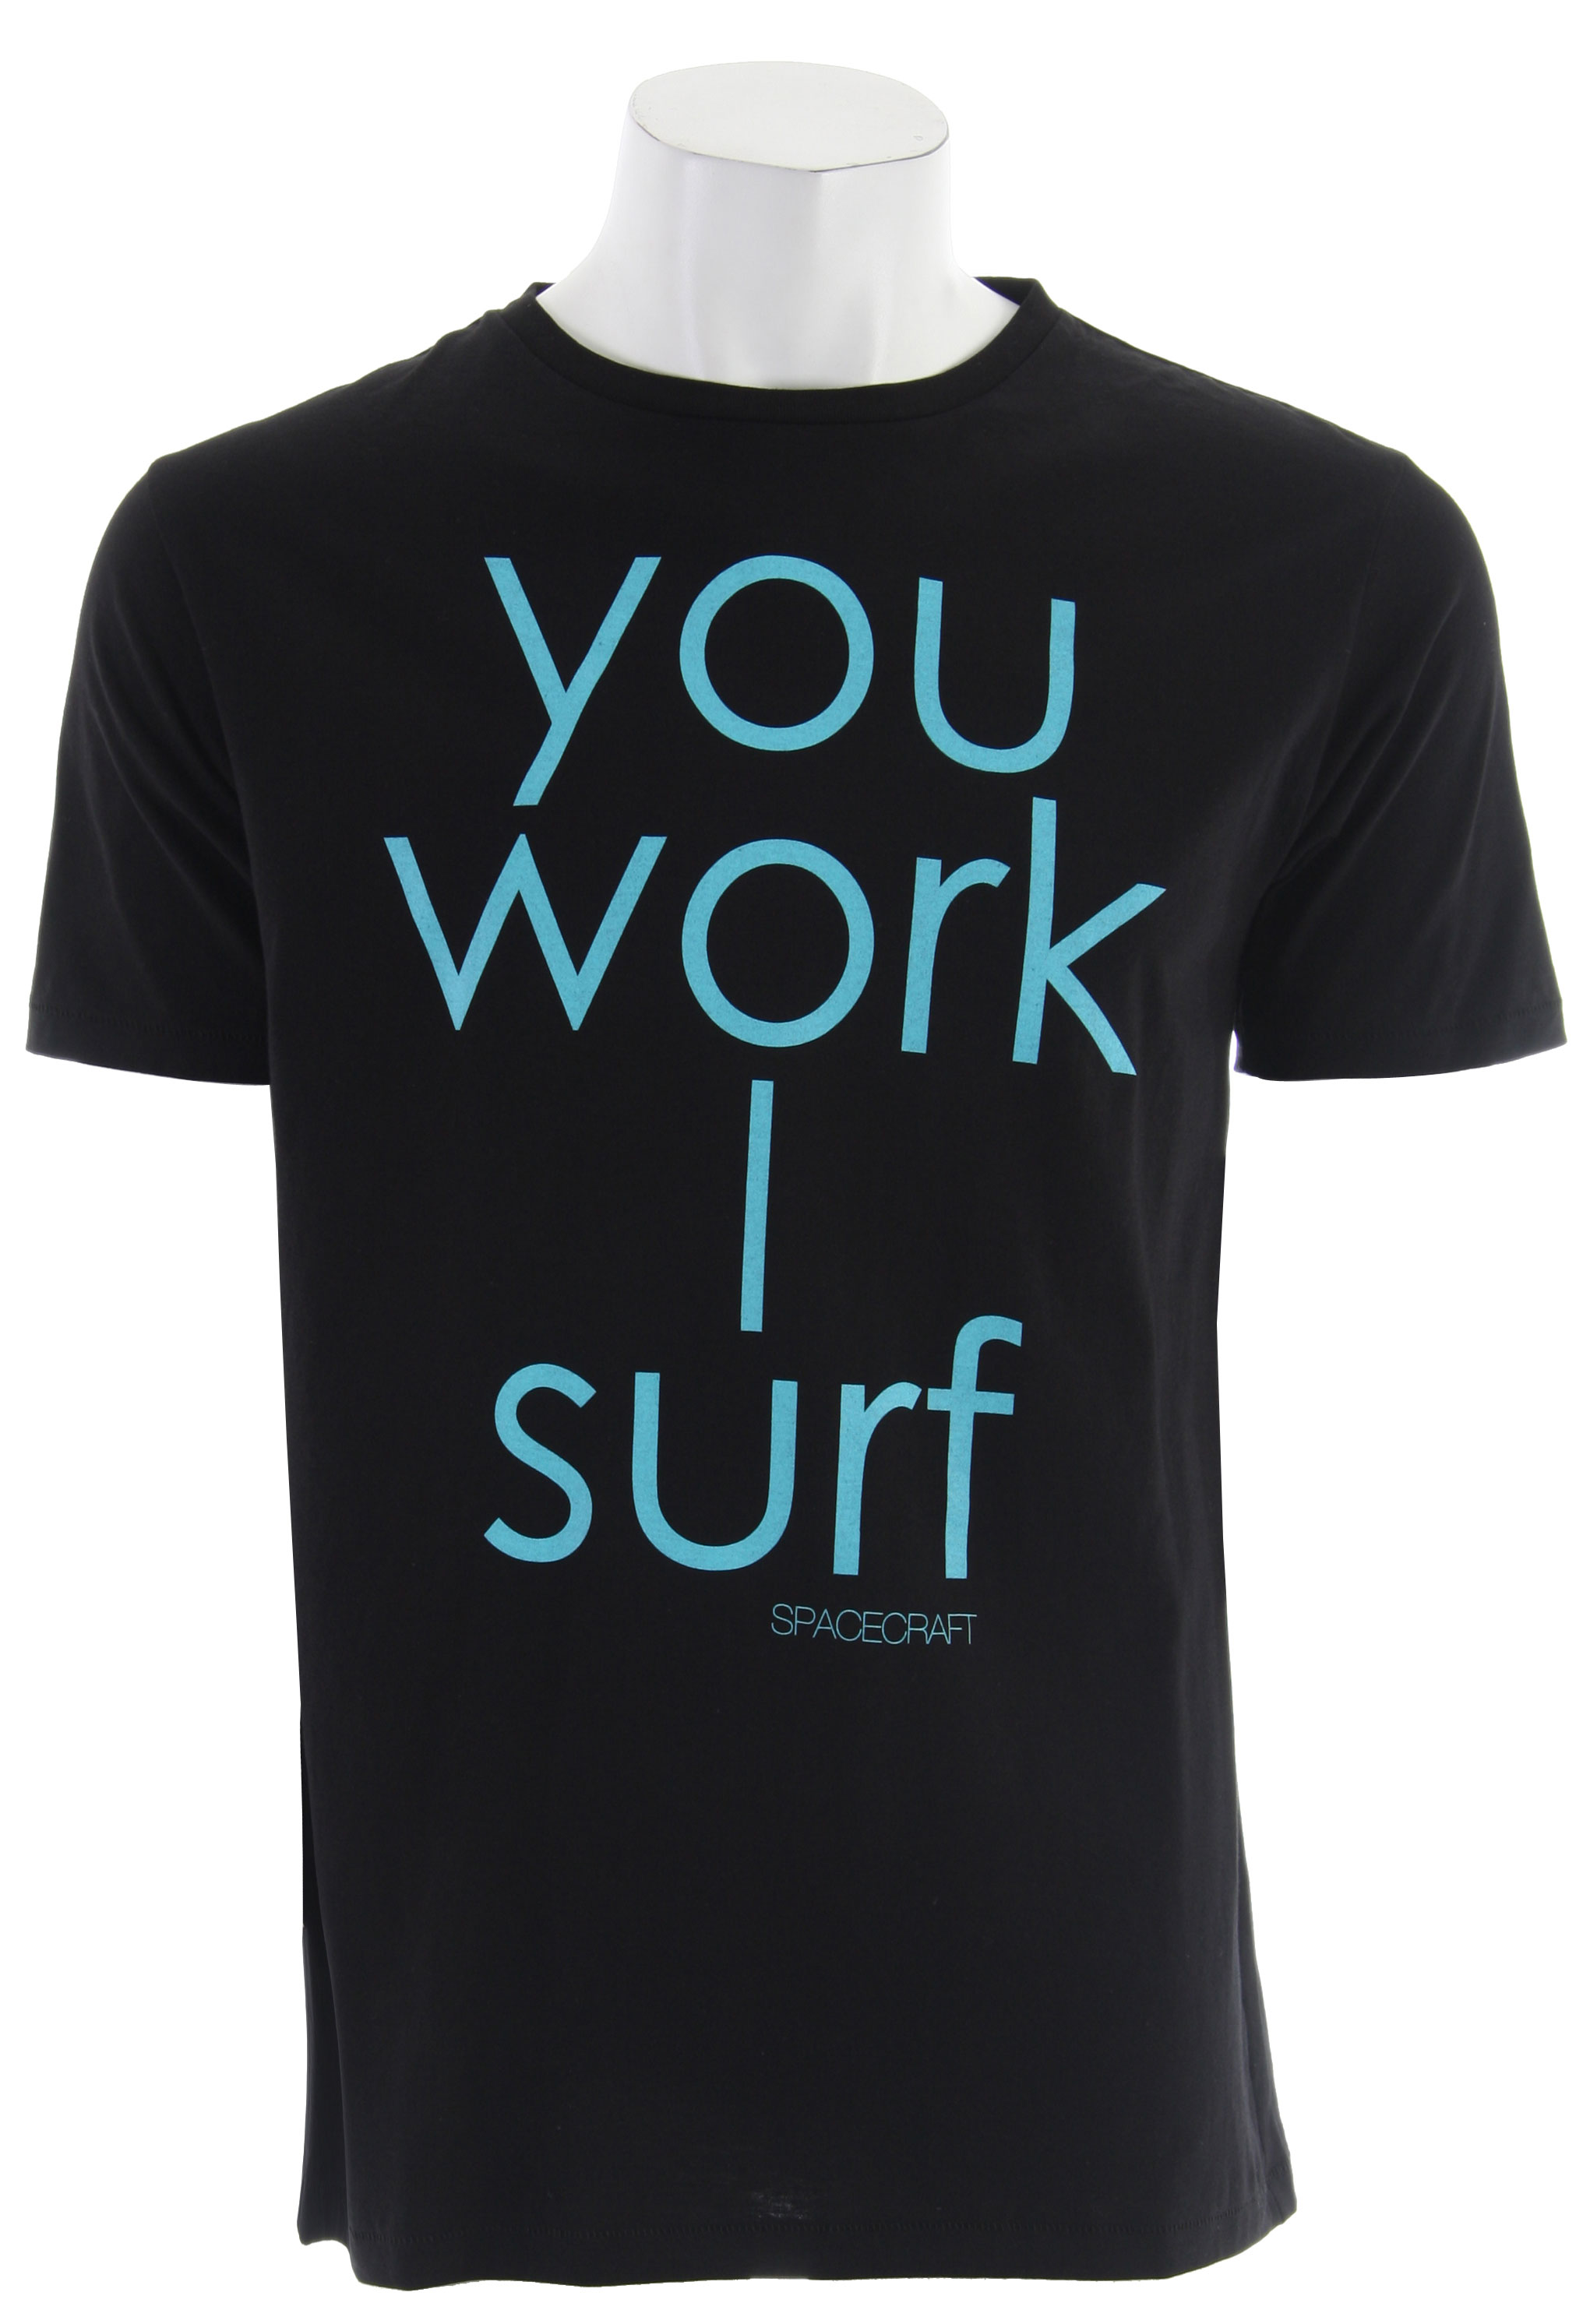 Surf The Spacecraft You Work I Surf T-Shirt is a cotton jersey with self-explained print. - $24.95